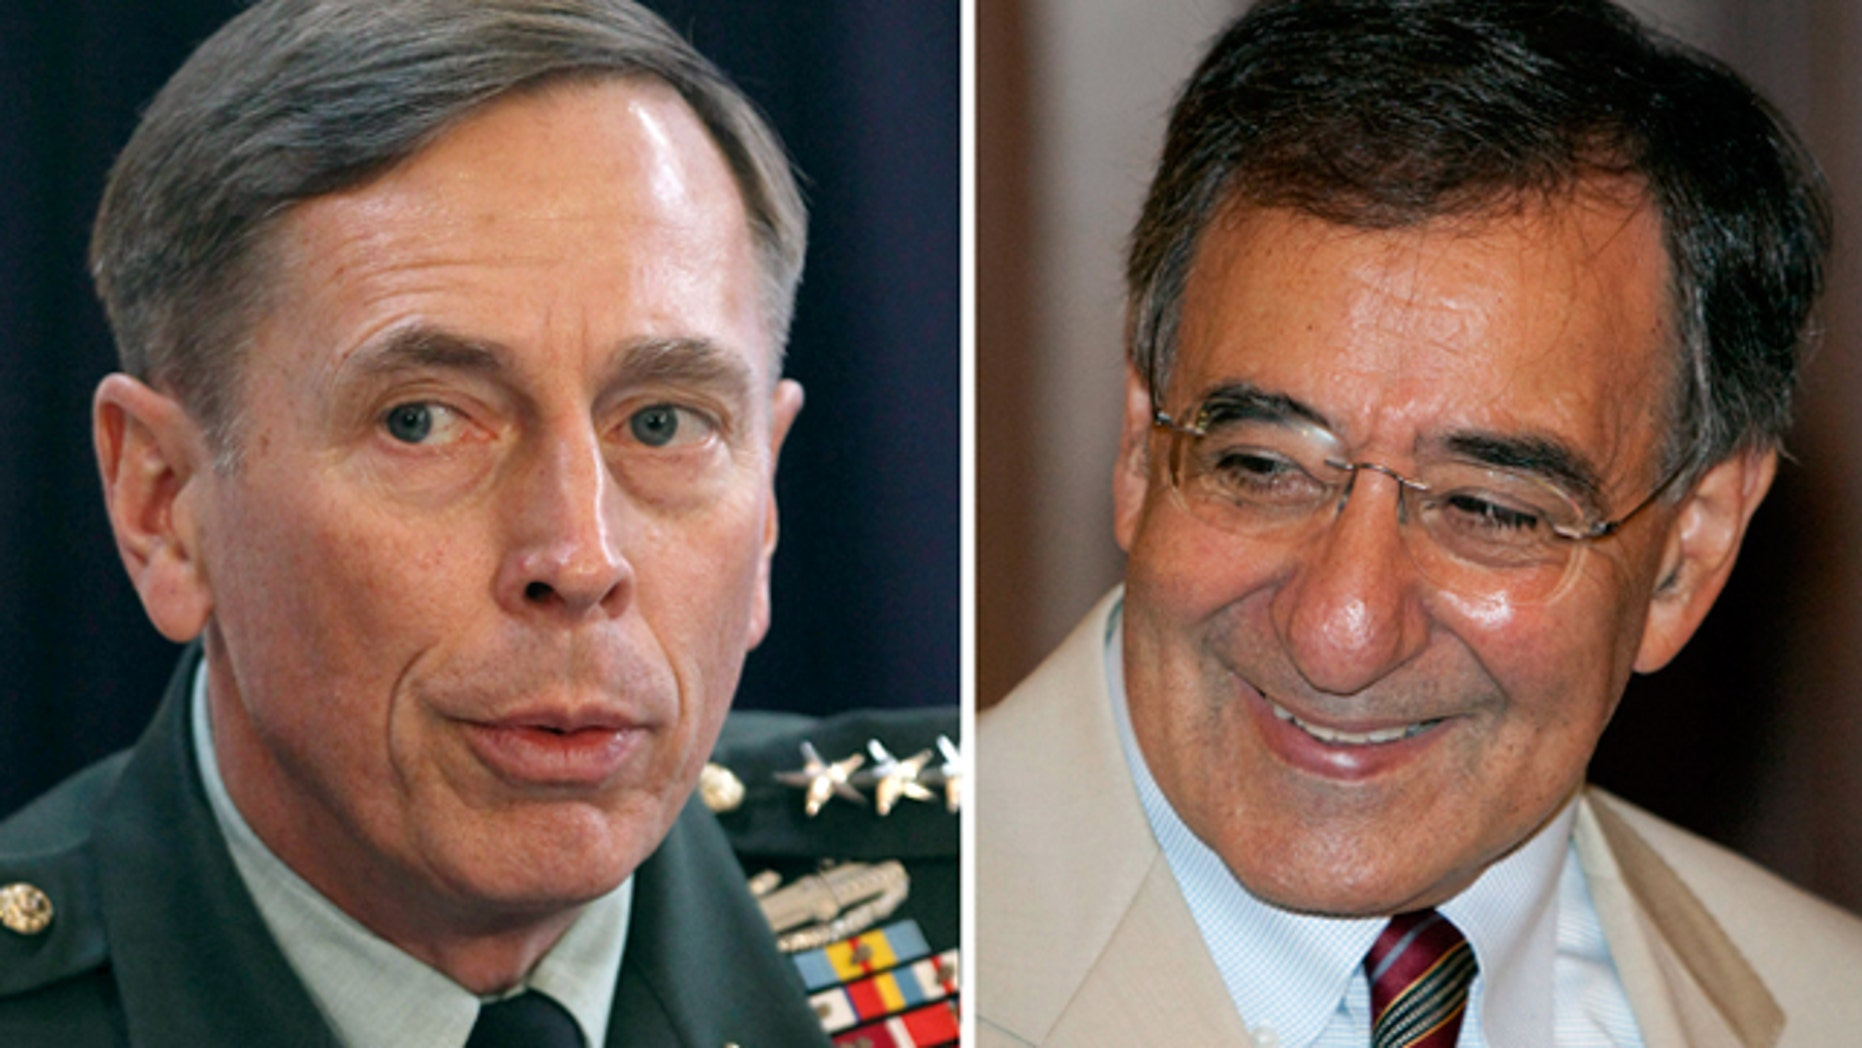 U.S. Army General David Petraeus and CIA director Leon Panetta